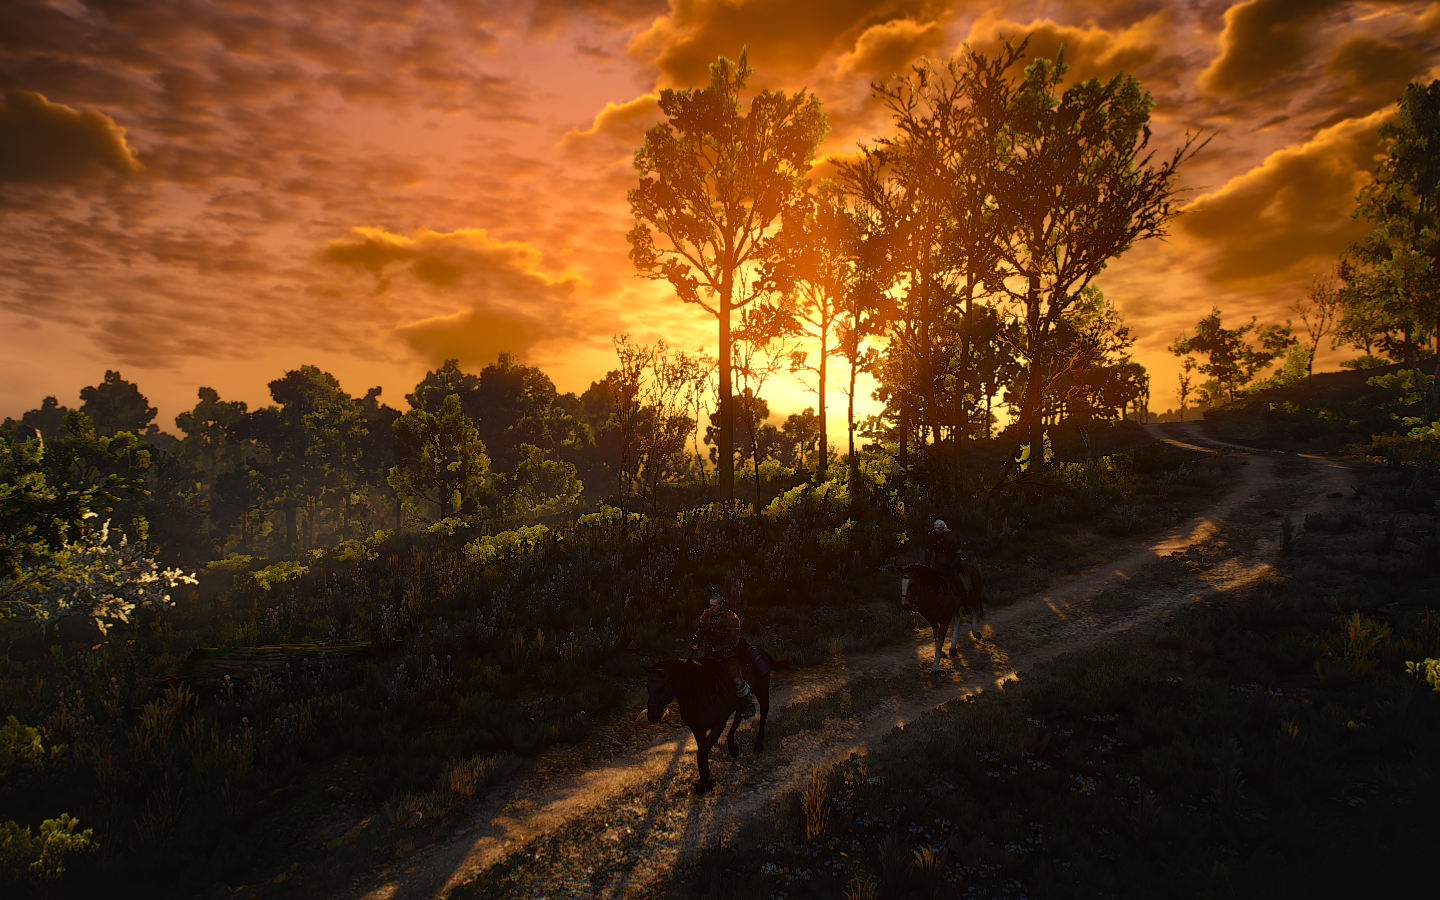 The Witcher 3 Screenshot 2018.08.25 - 21.39.13.47.png - Witcher 3: Wild Hunt, the